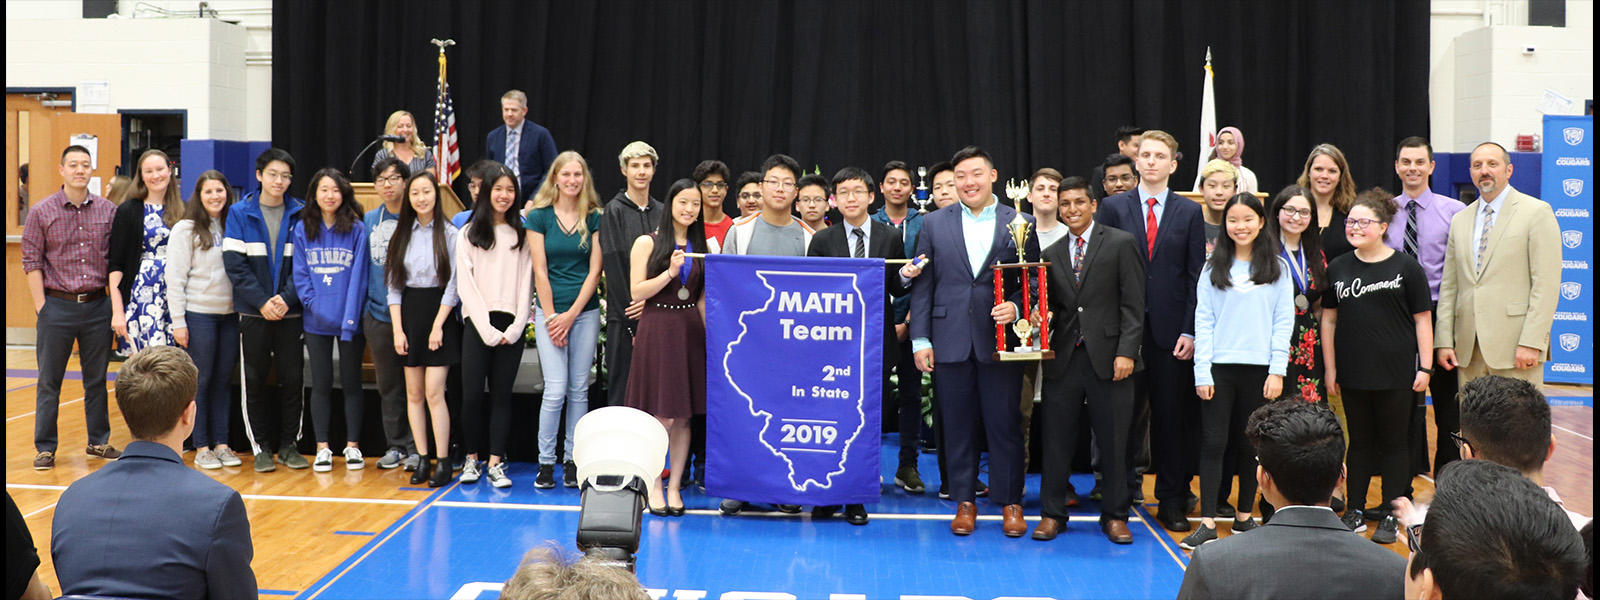 VHHS Math Team 2nd in State